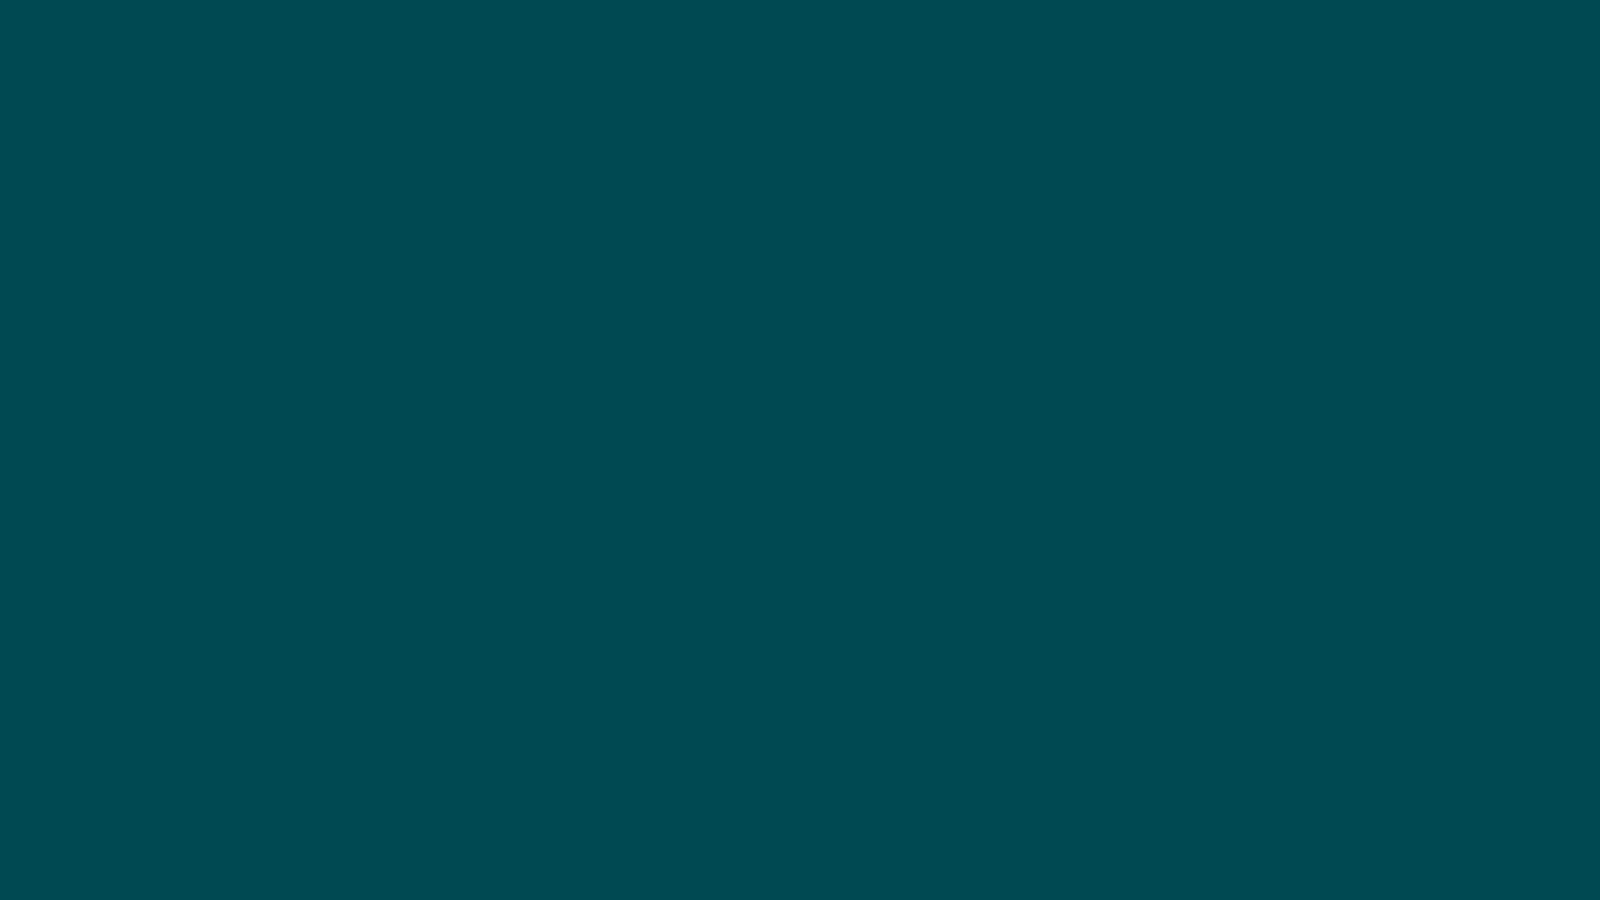 1600x900 Midnight Green Solid Color Background